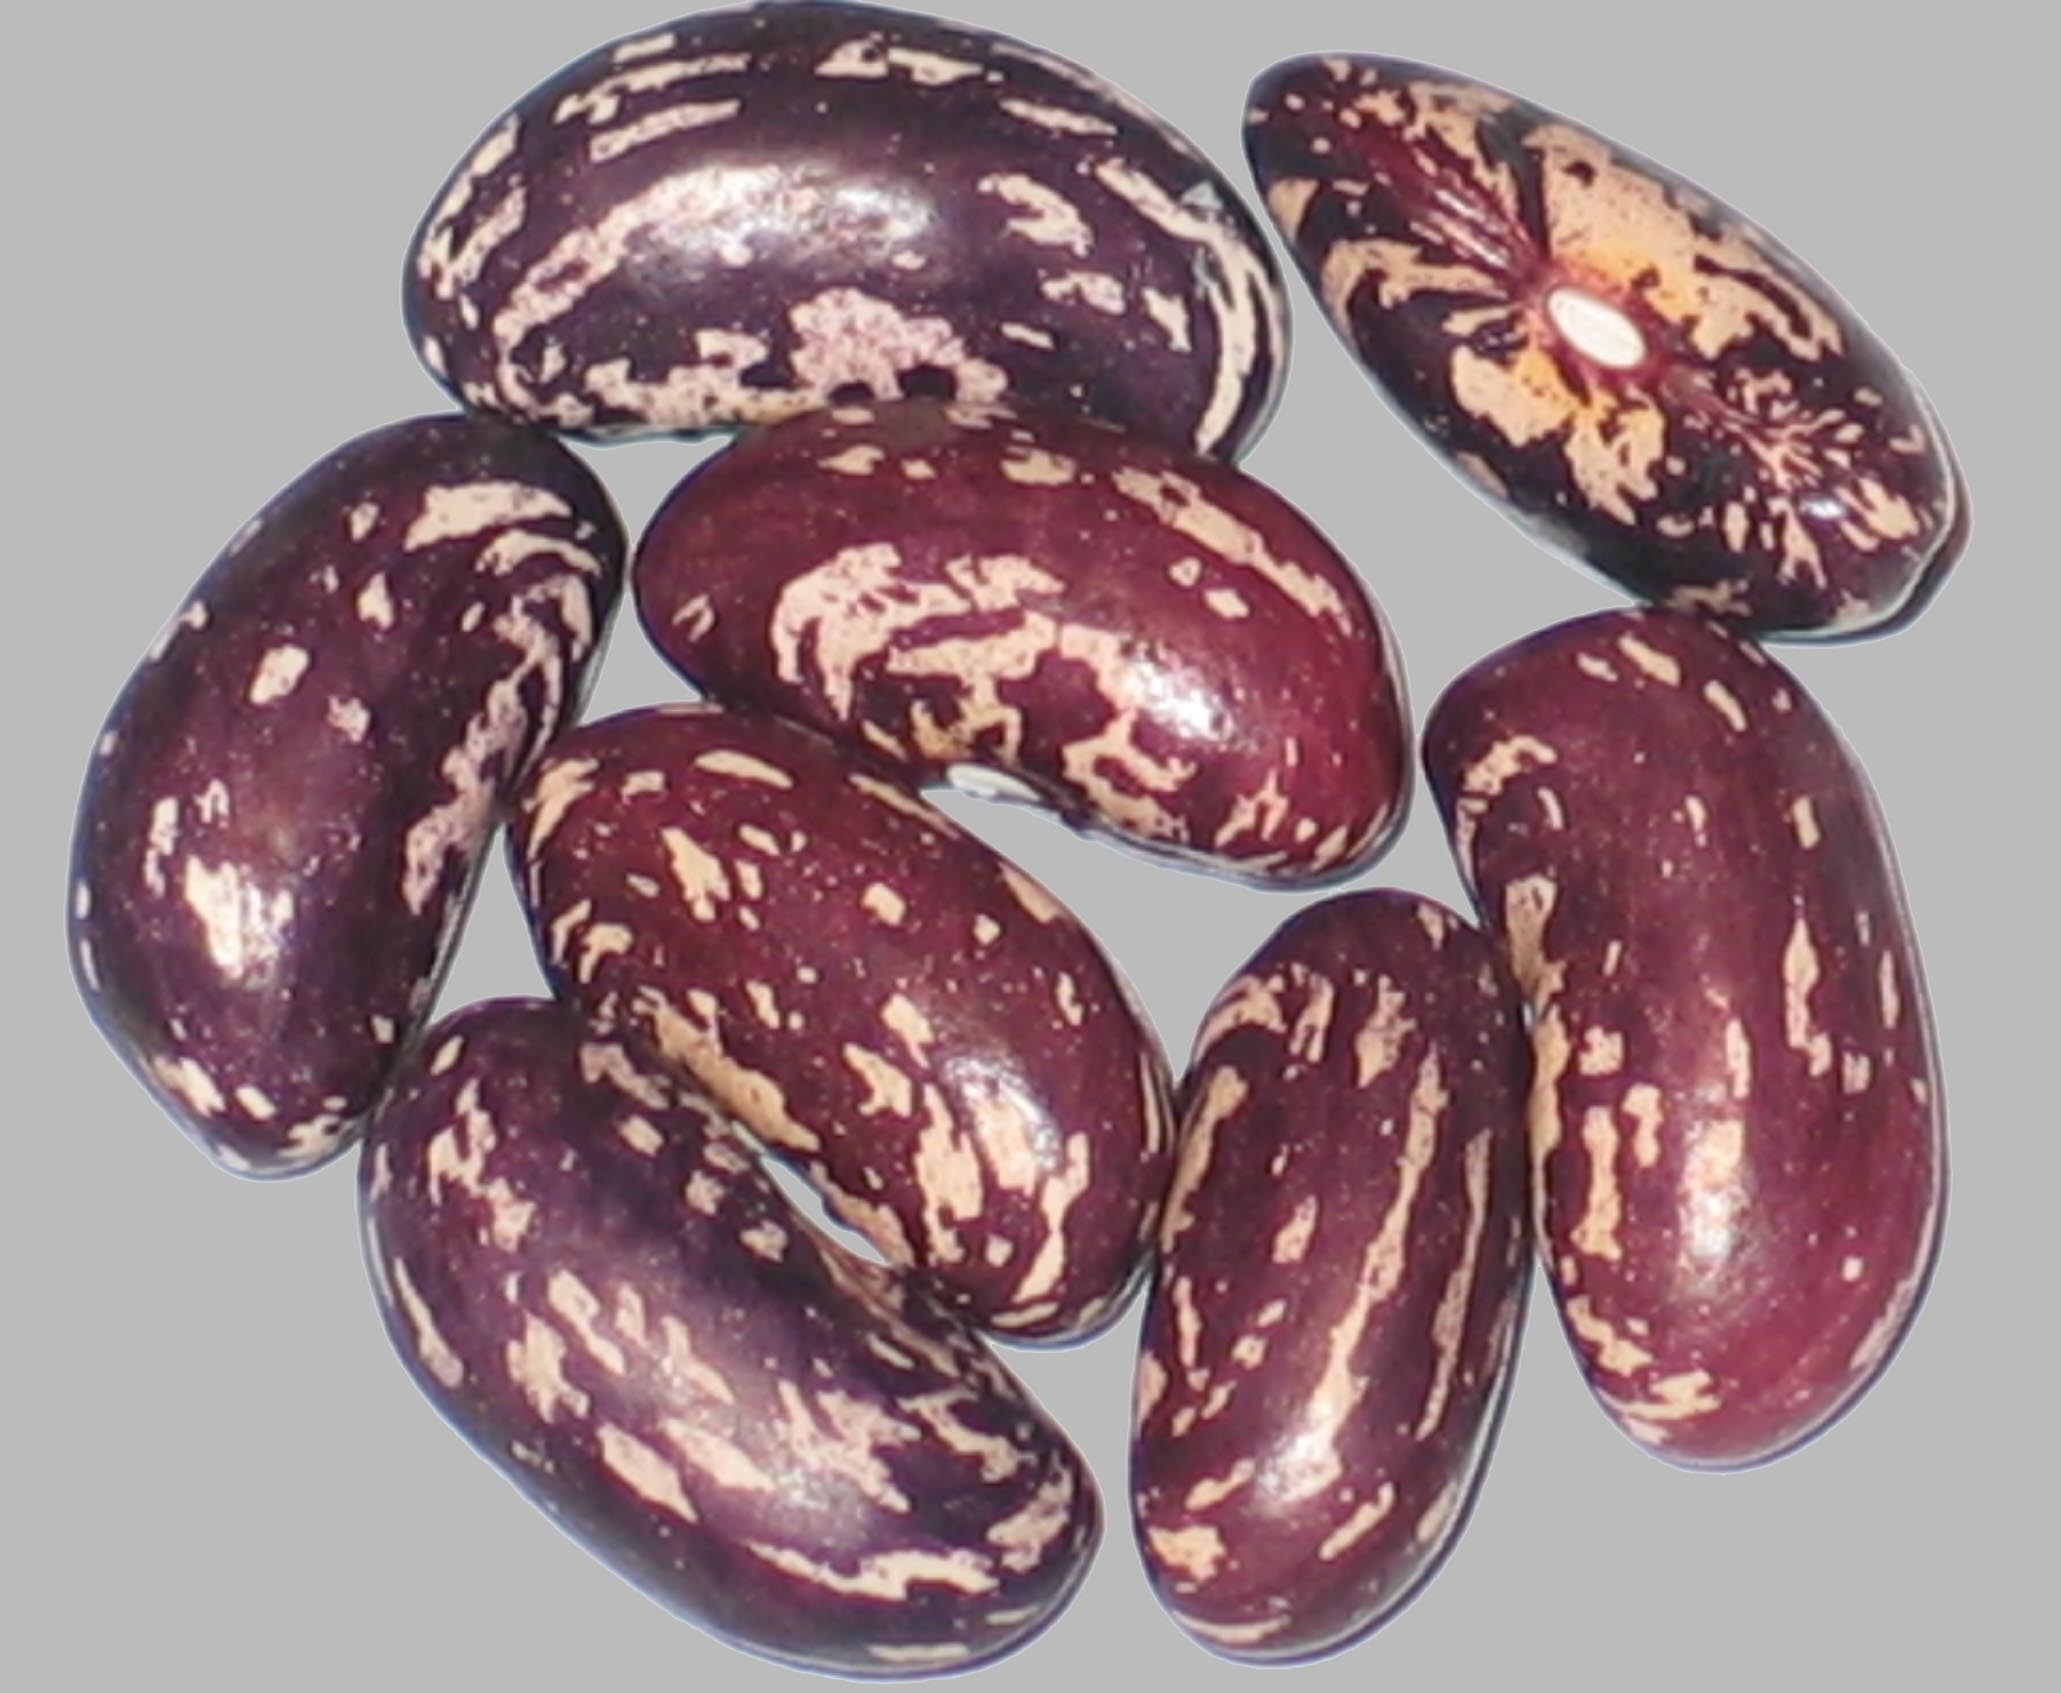 image of Railroad beans